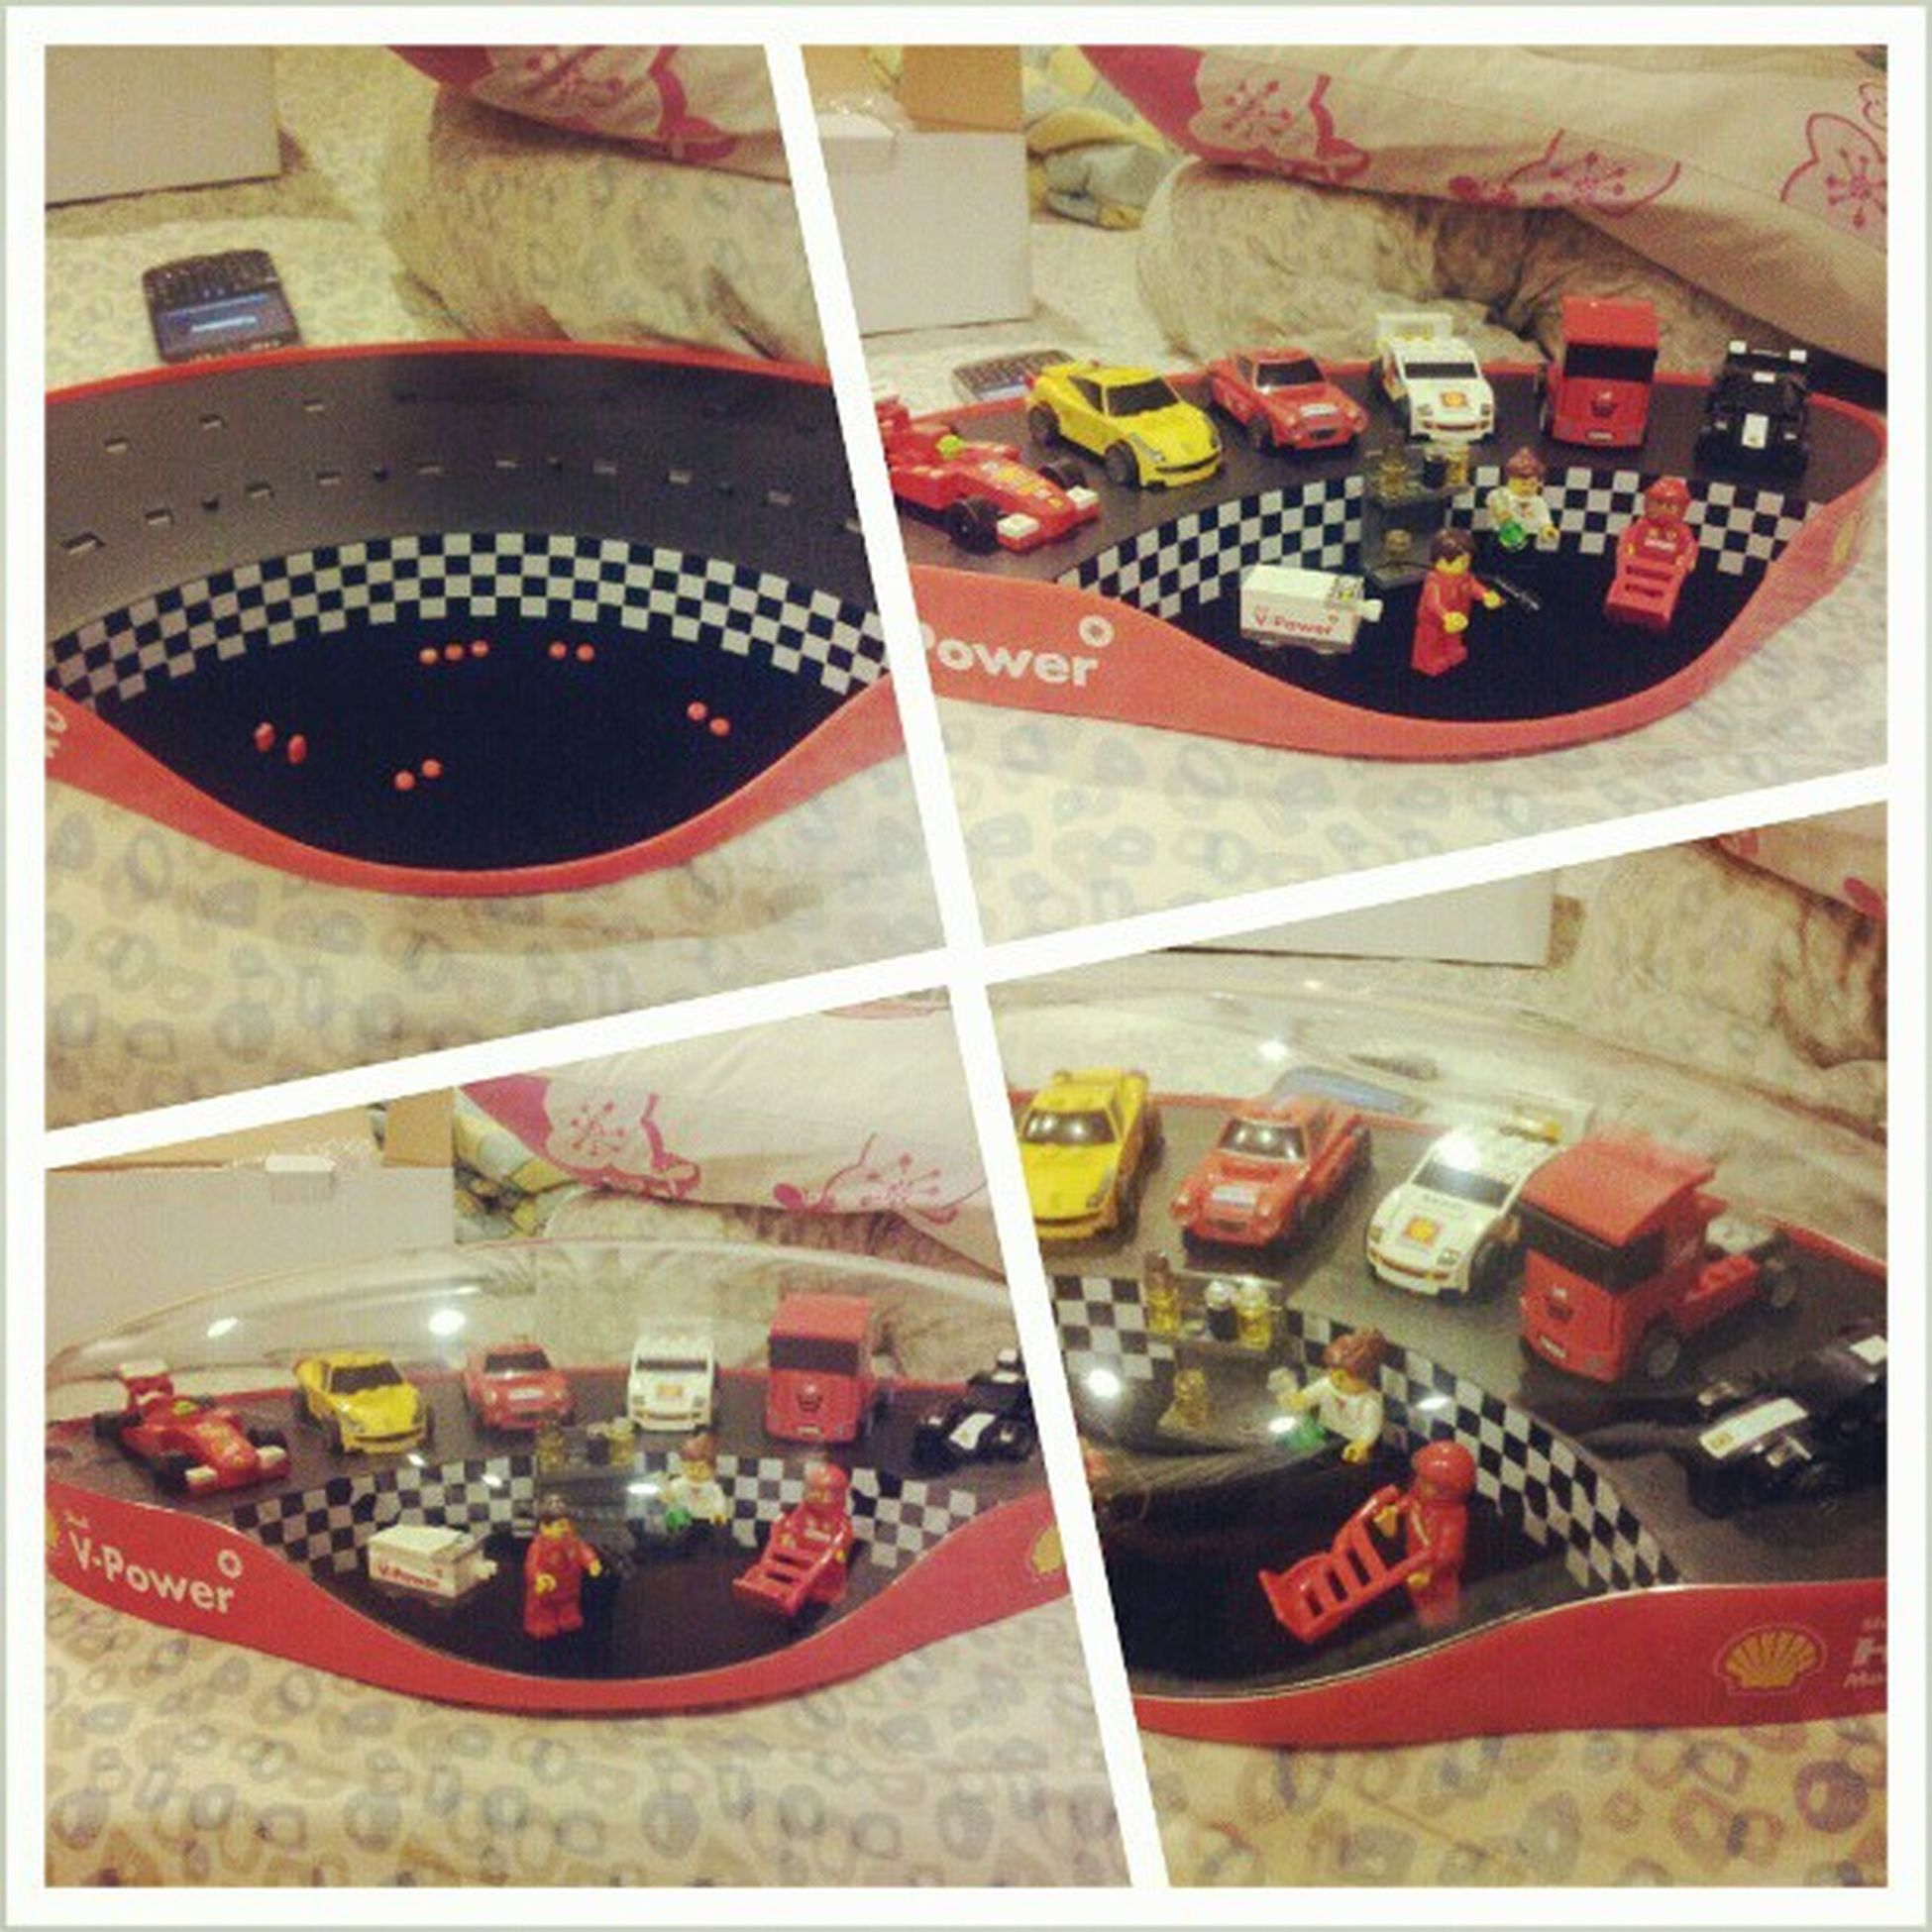 Alhamdulillah....at last, I managed to complete the Shell Lego collection... Shell Vpower Ferrari LEGO